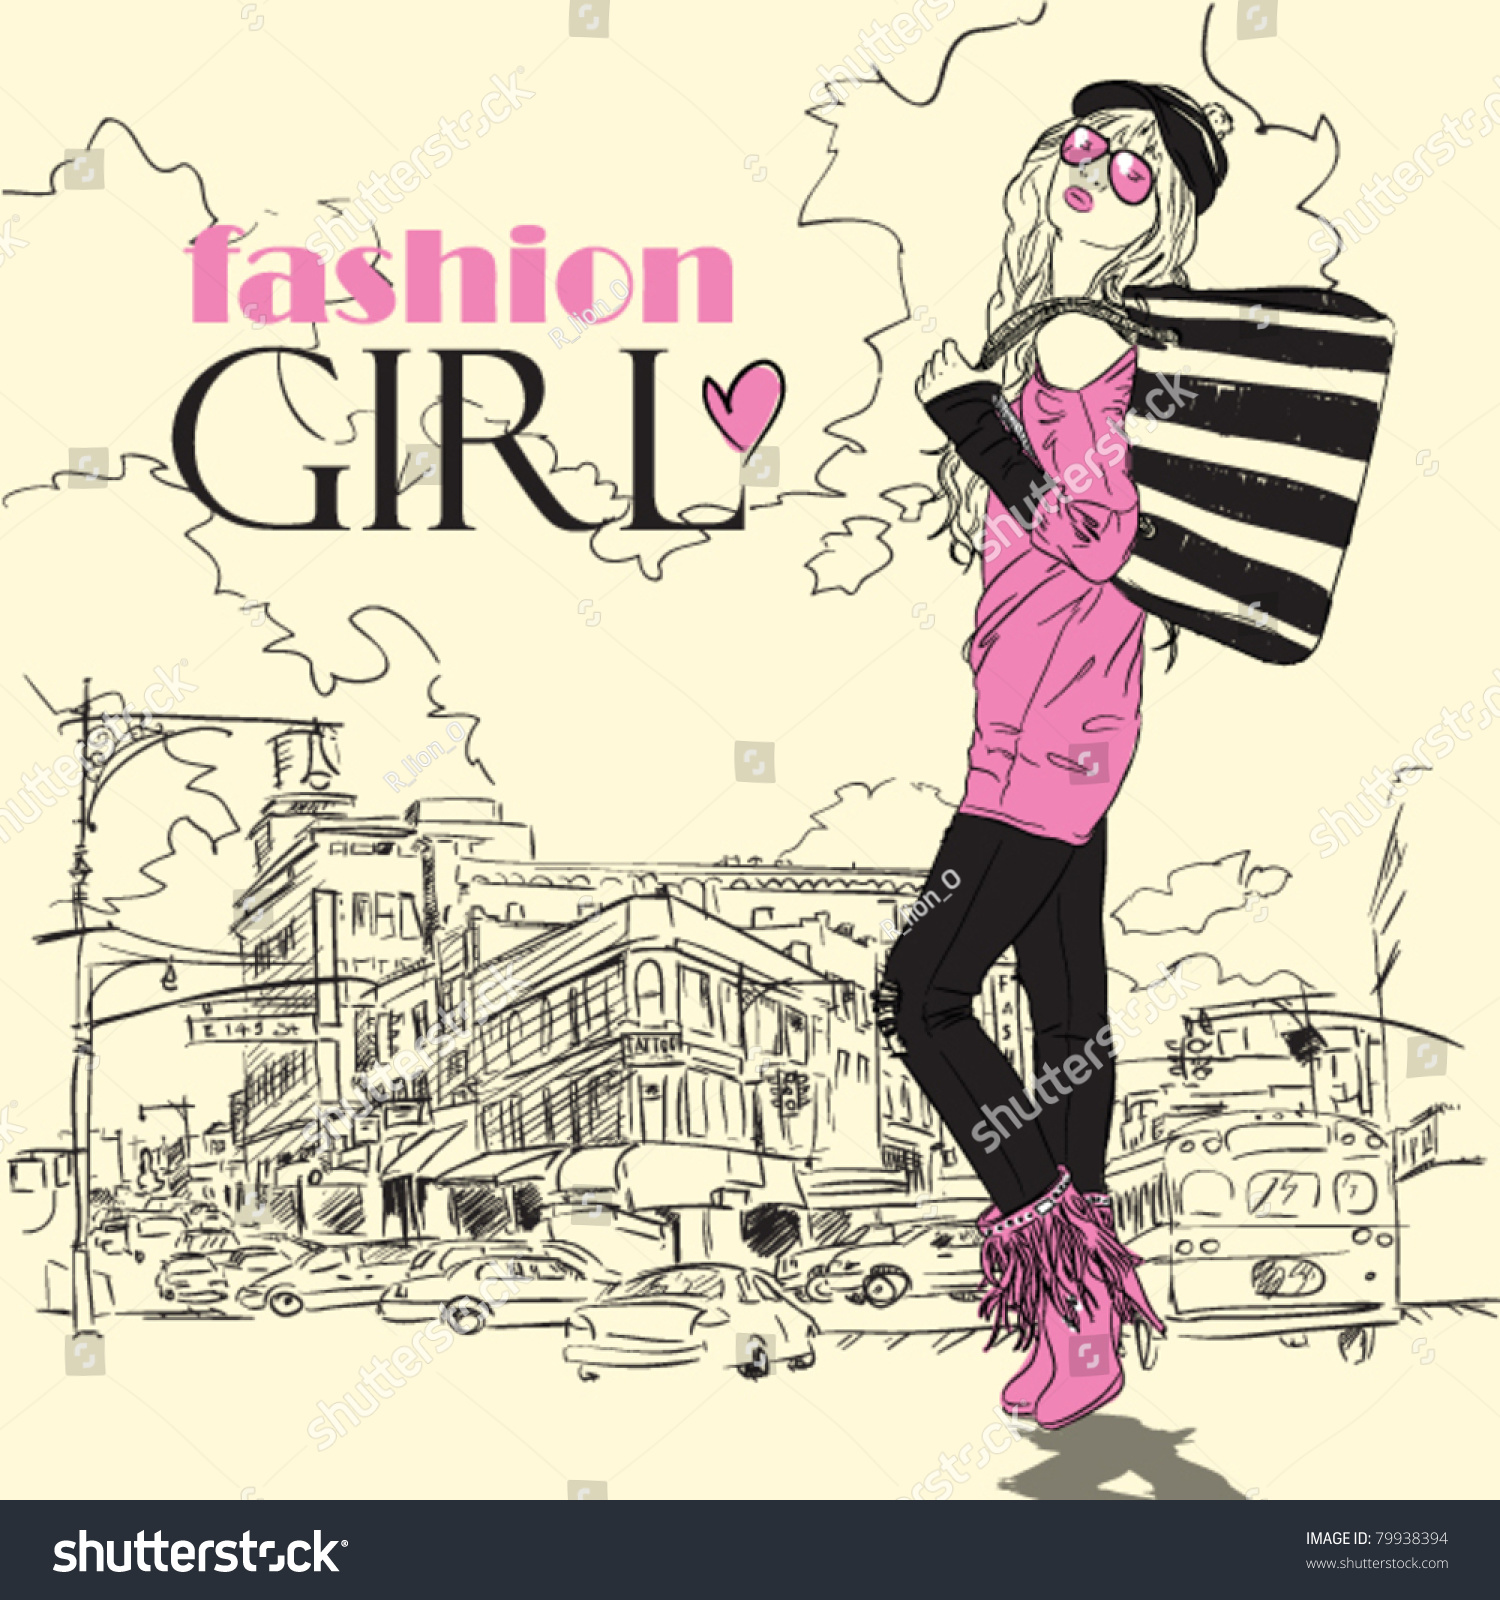 Fashion Girl Sketchstyle On Townbackground Vector Stock Vector 79938394 Shutterstock